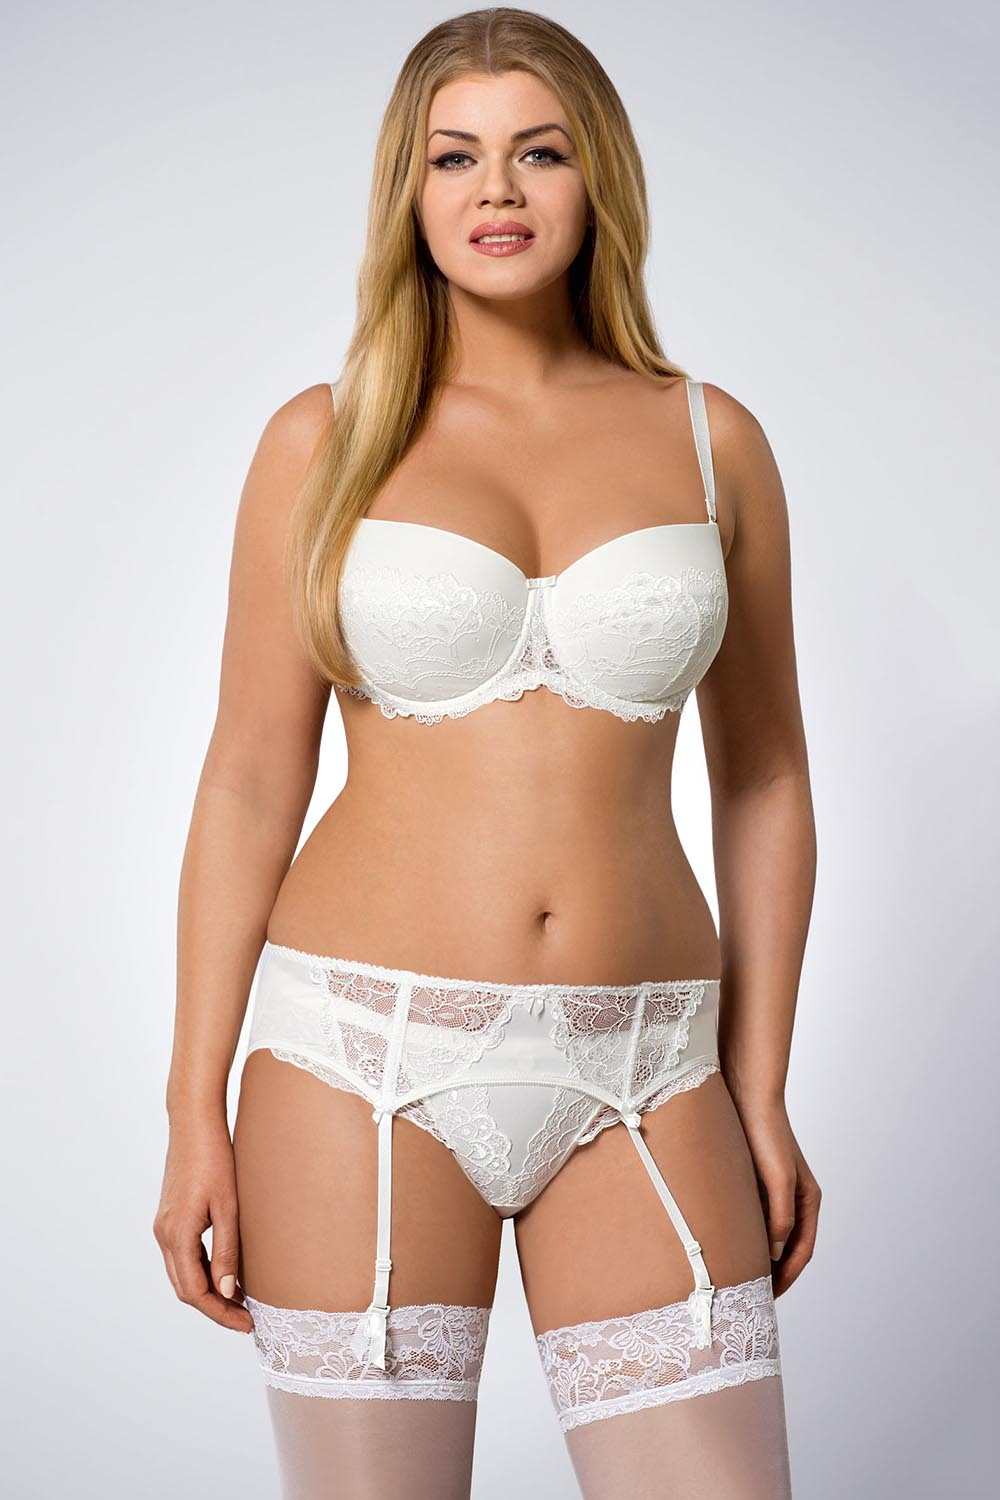 310f34b2ec ... Ava 605 Lala underwired embroidered balconette push-up pads bra  strapless bridal ...